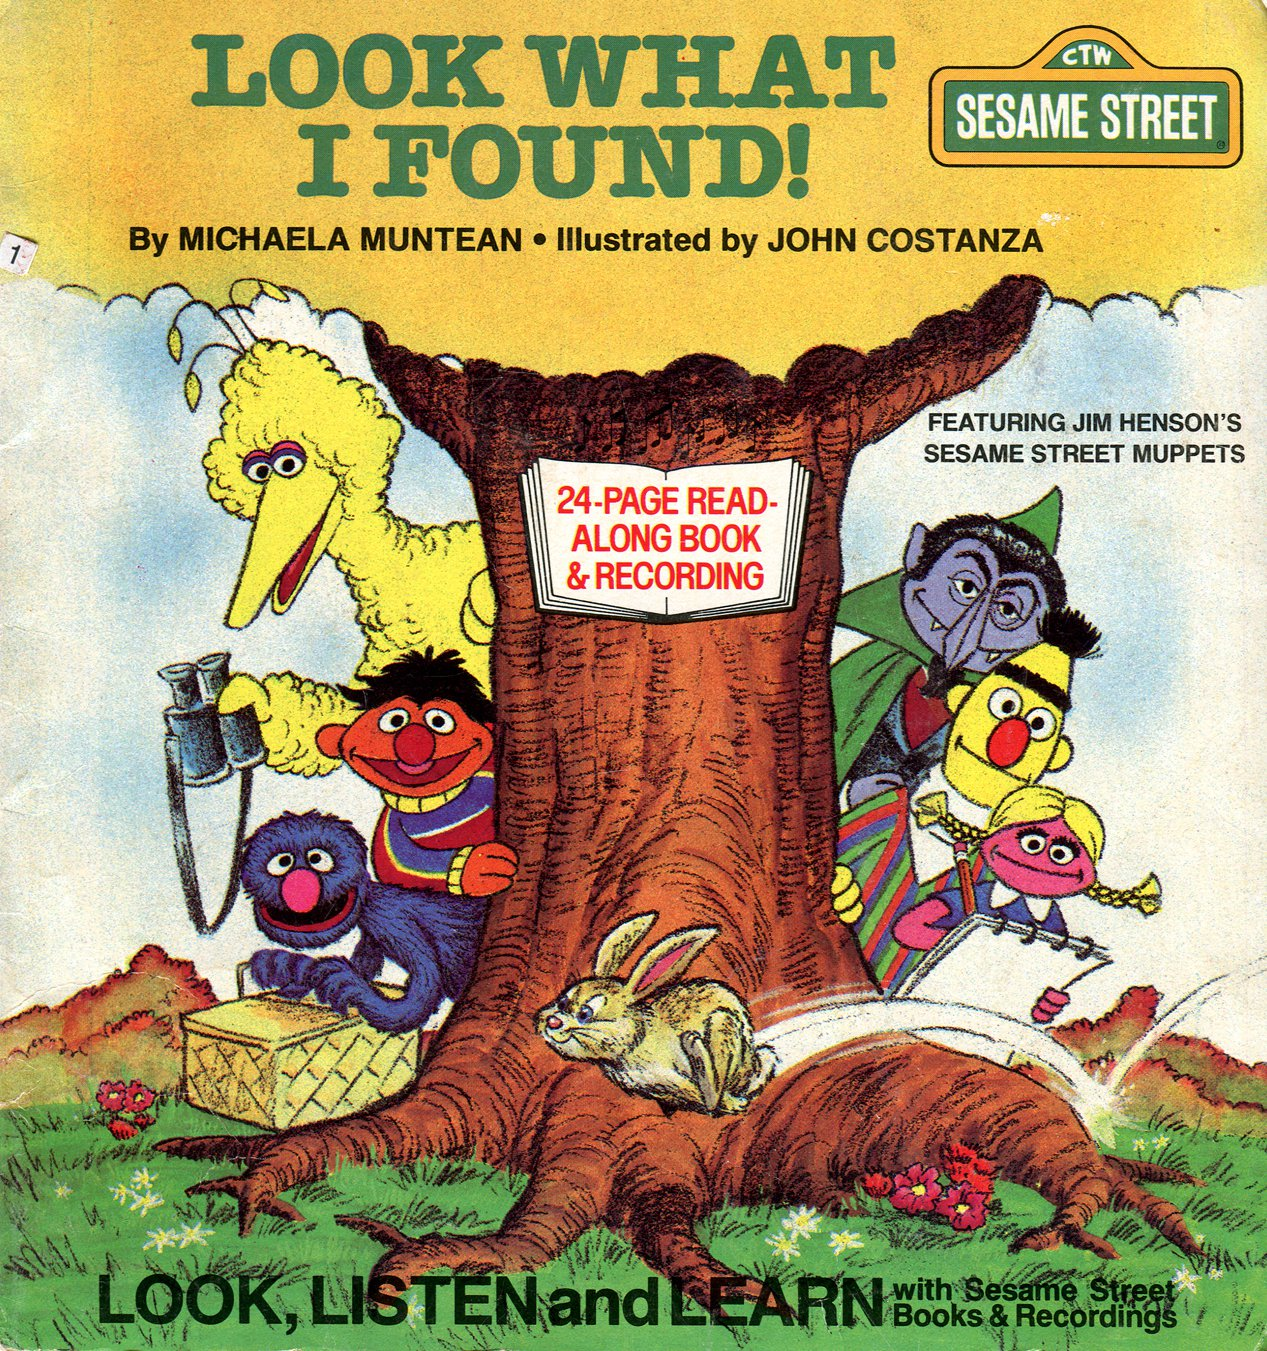 Look What I Found! - Sesame Street Look-Listen-Learn Book & Record EP/CD